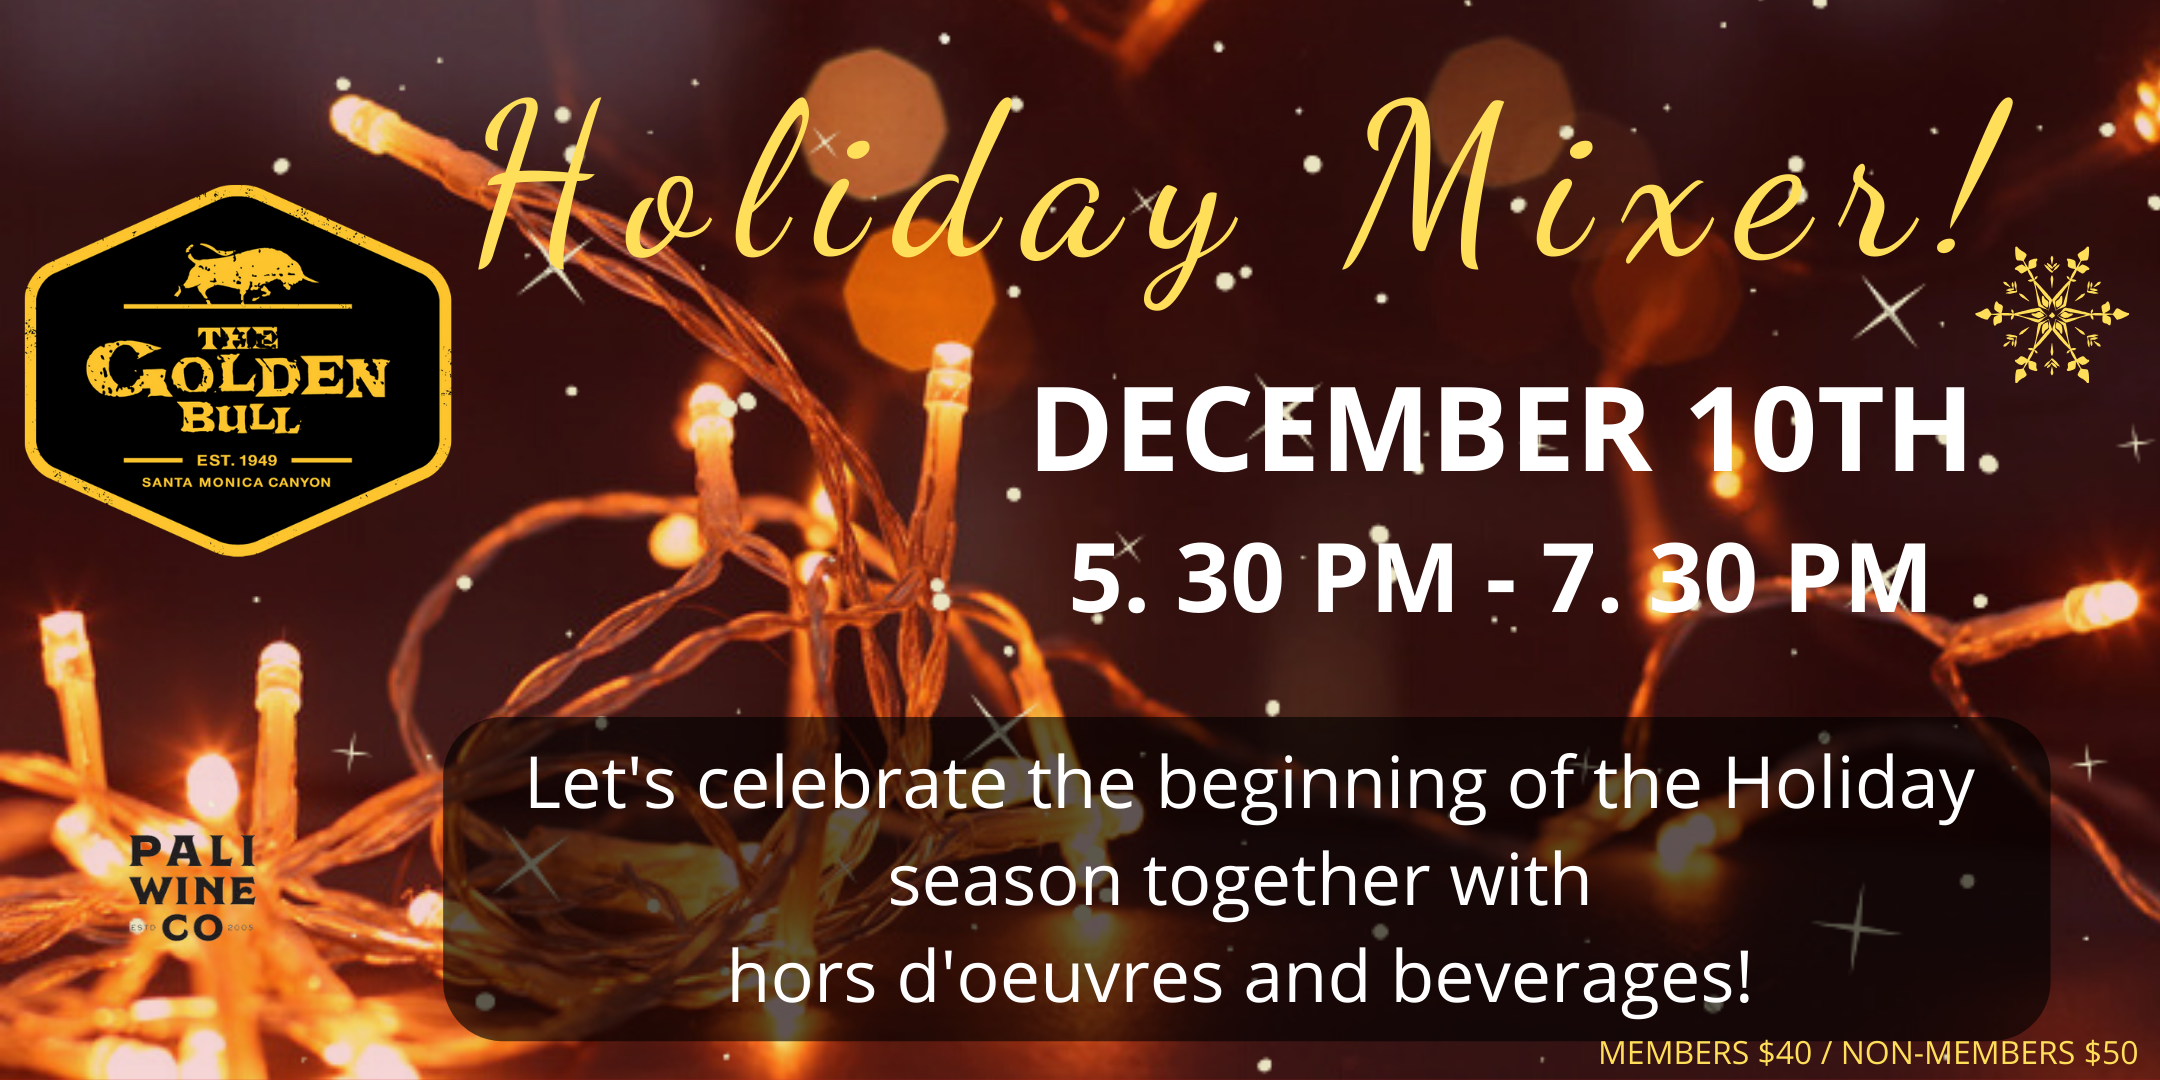 Holiday Mixer.website